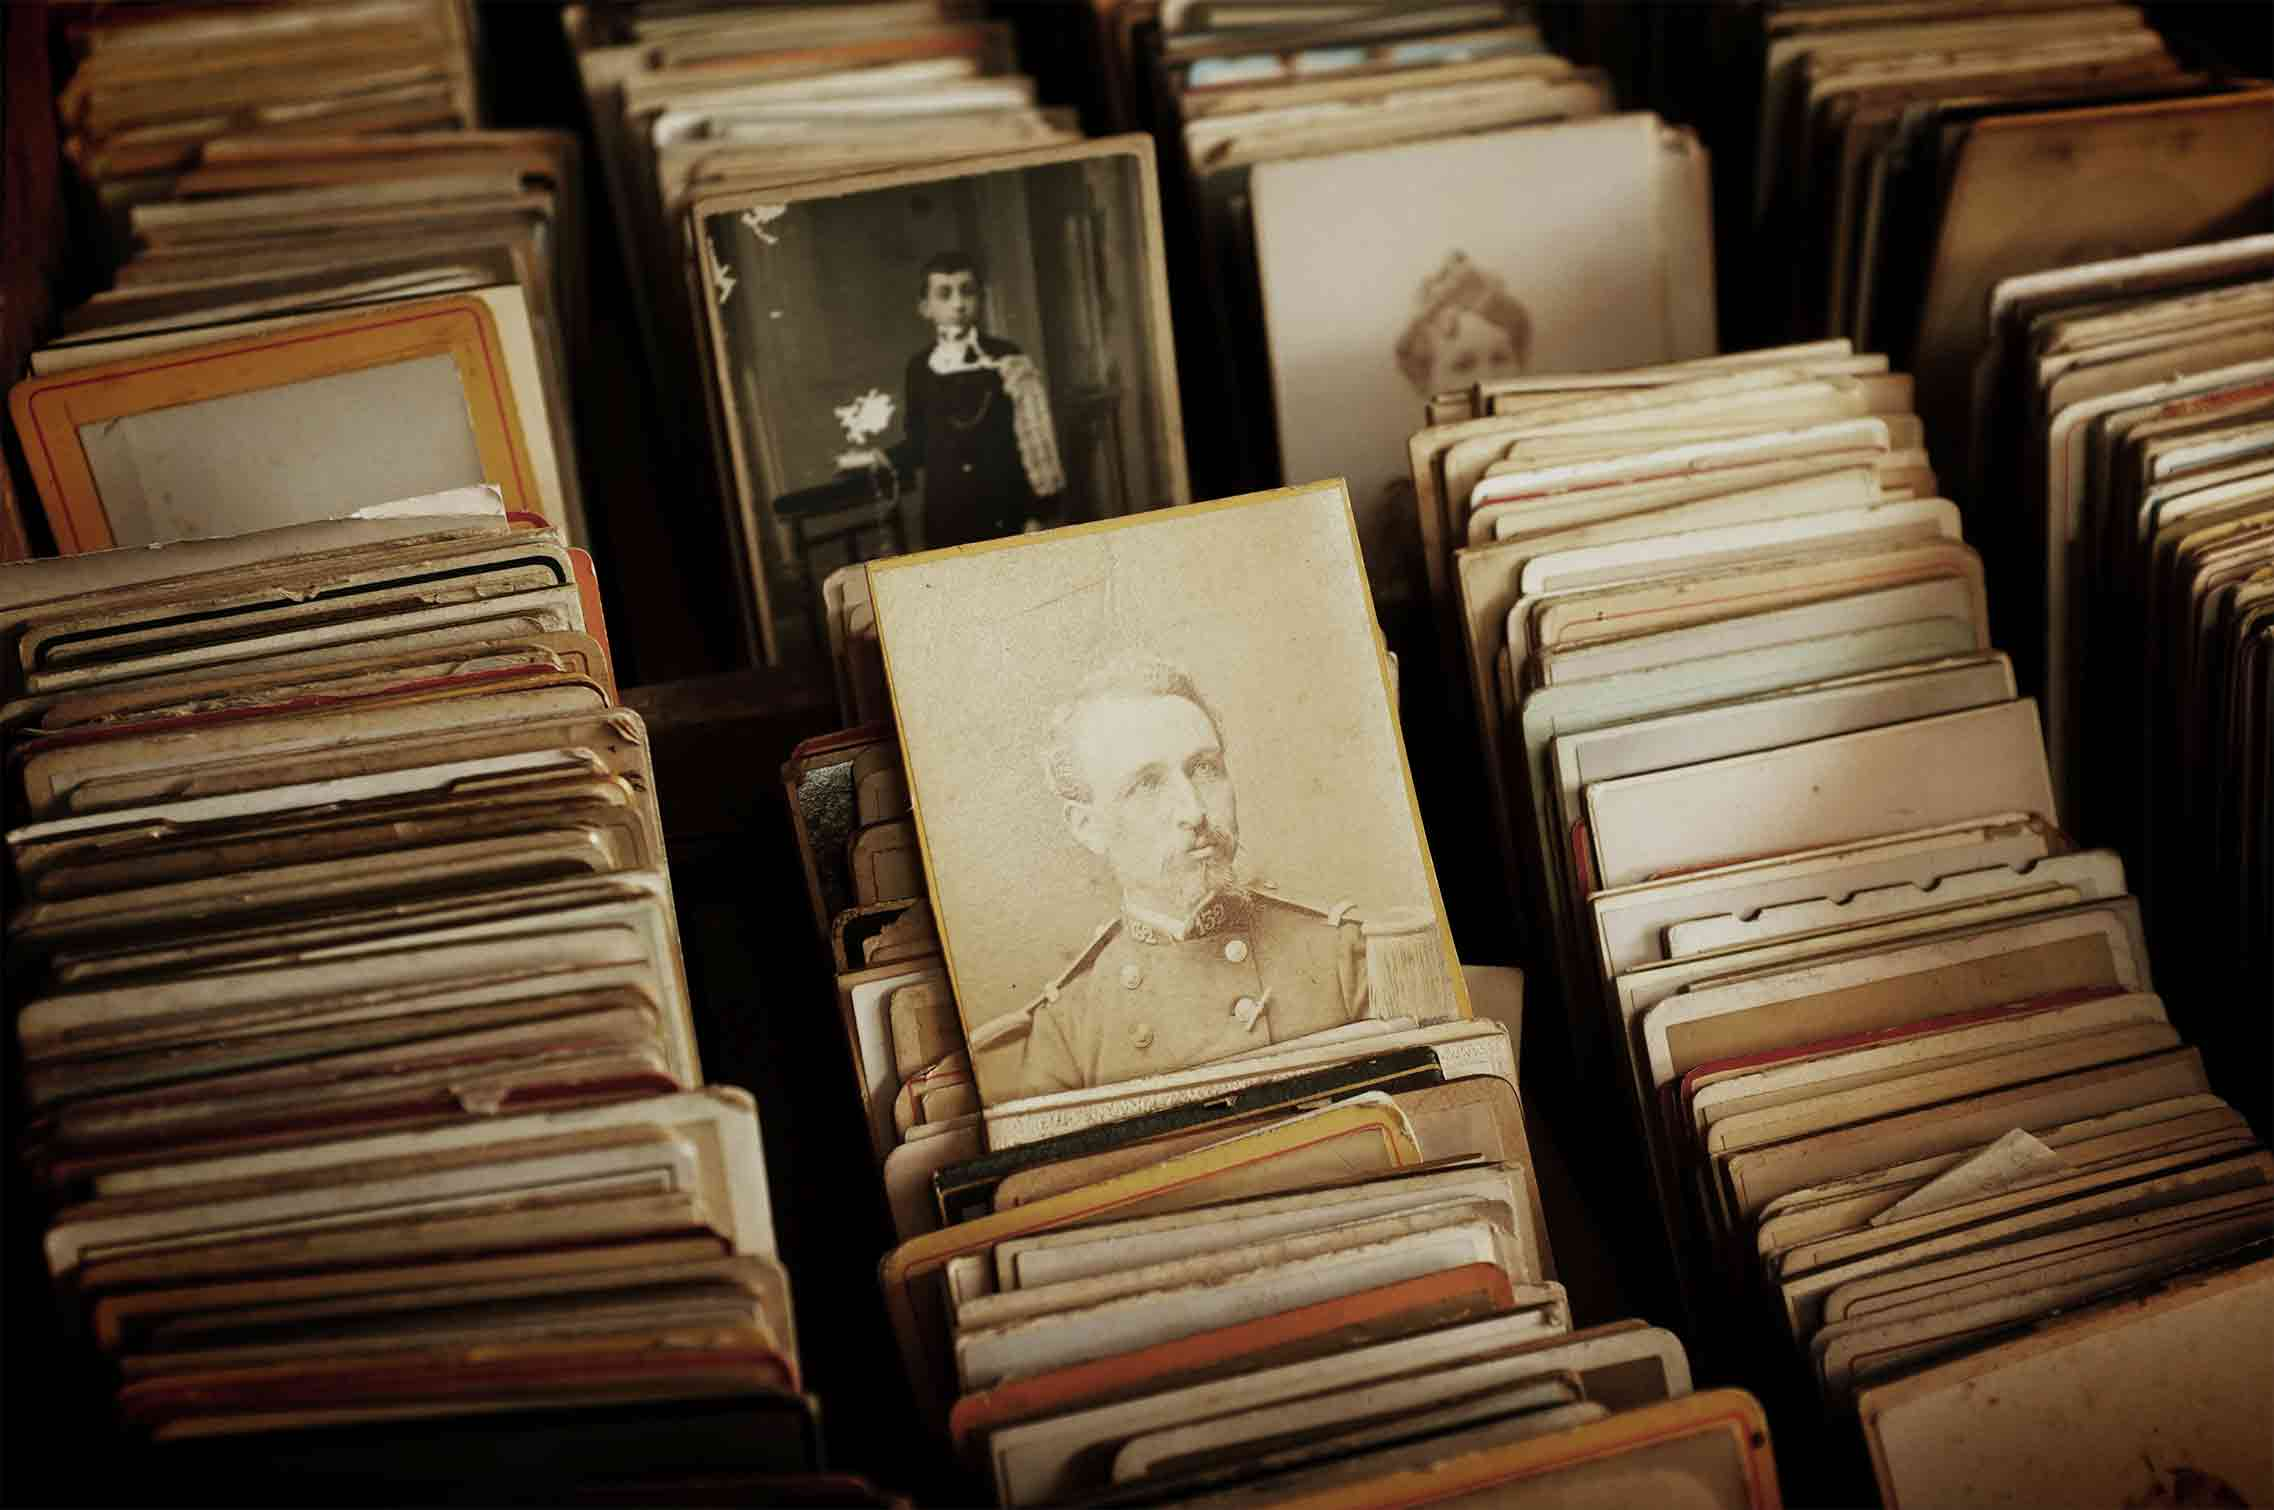 Strengthened by Stories: How My Parents and Grandparents Shaped My Future with Their History